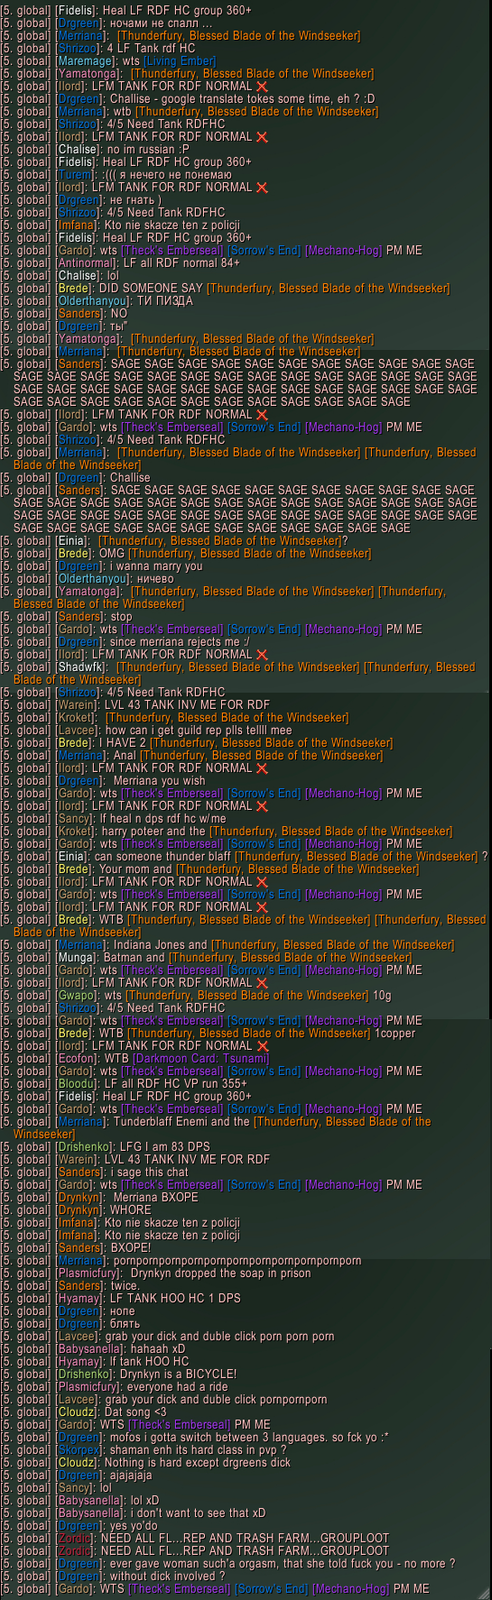 World of Warcraft chat at its best